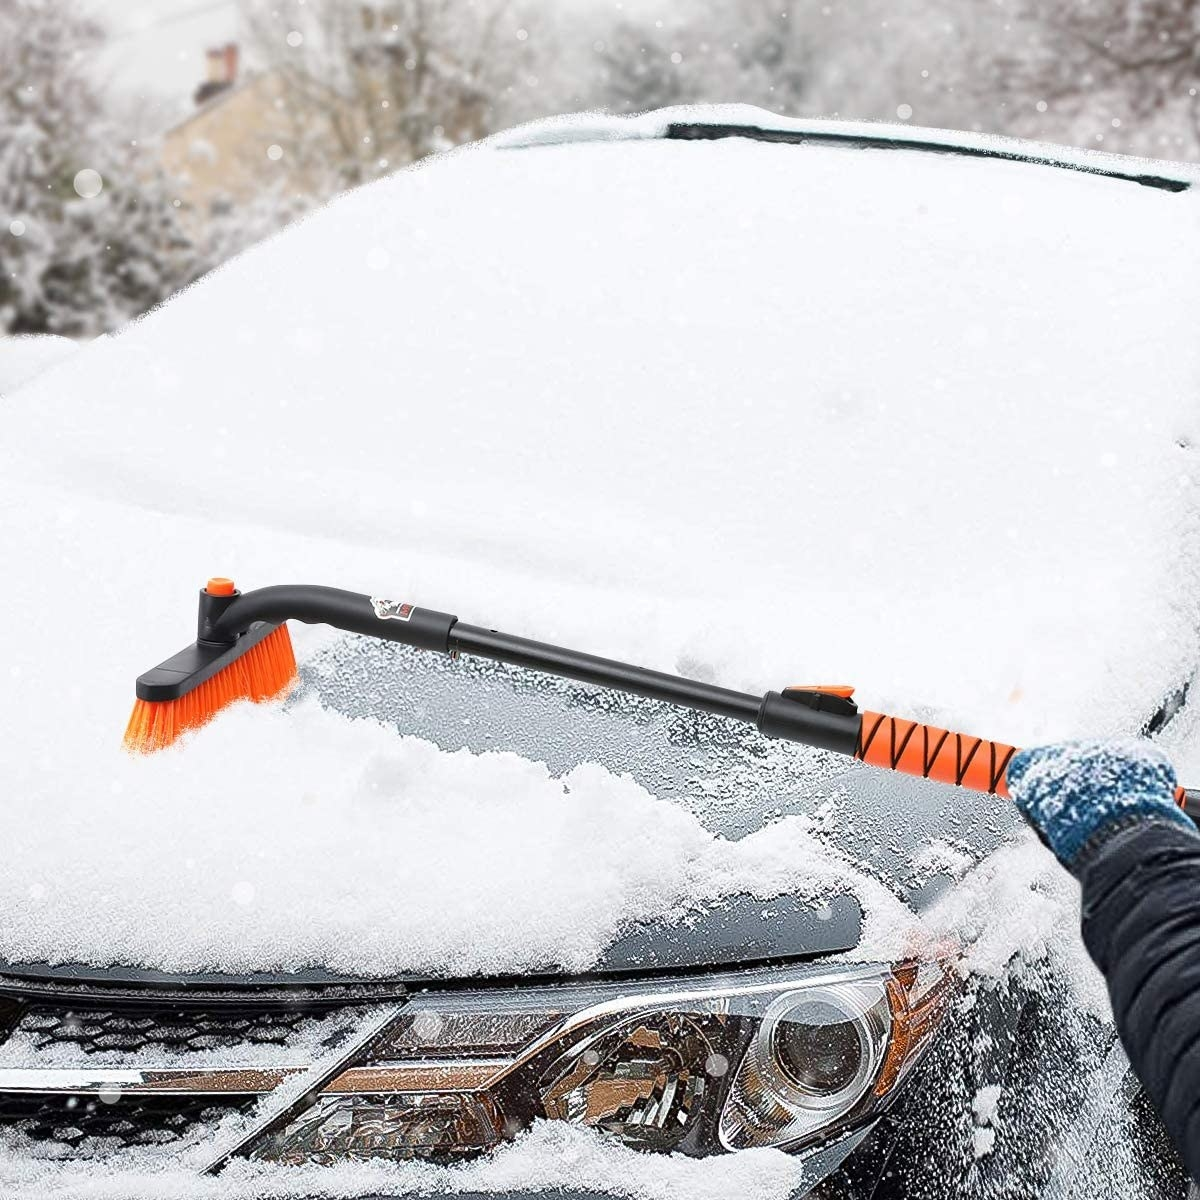 A model using the snow brush on a snowy mid-sized car